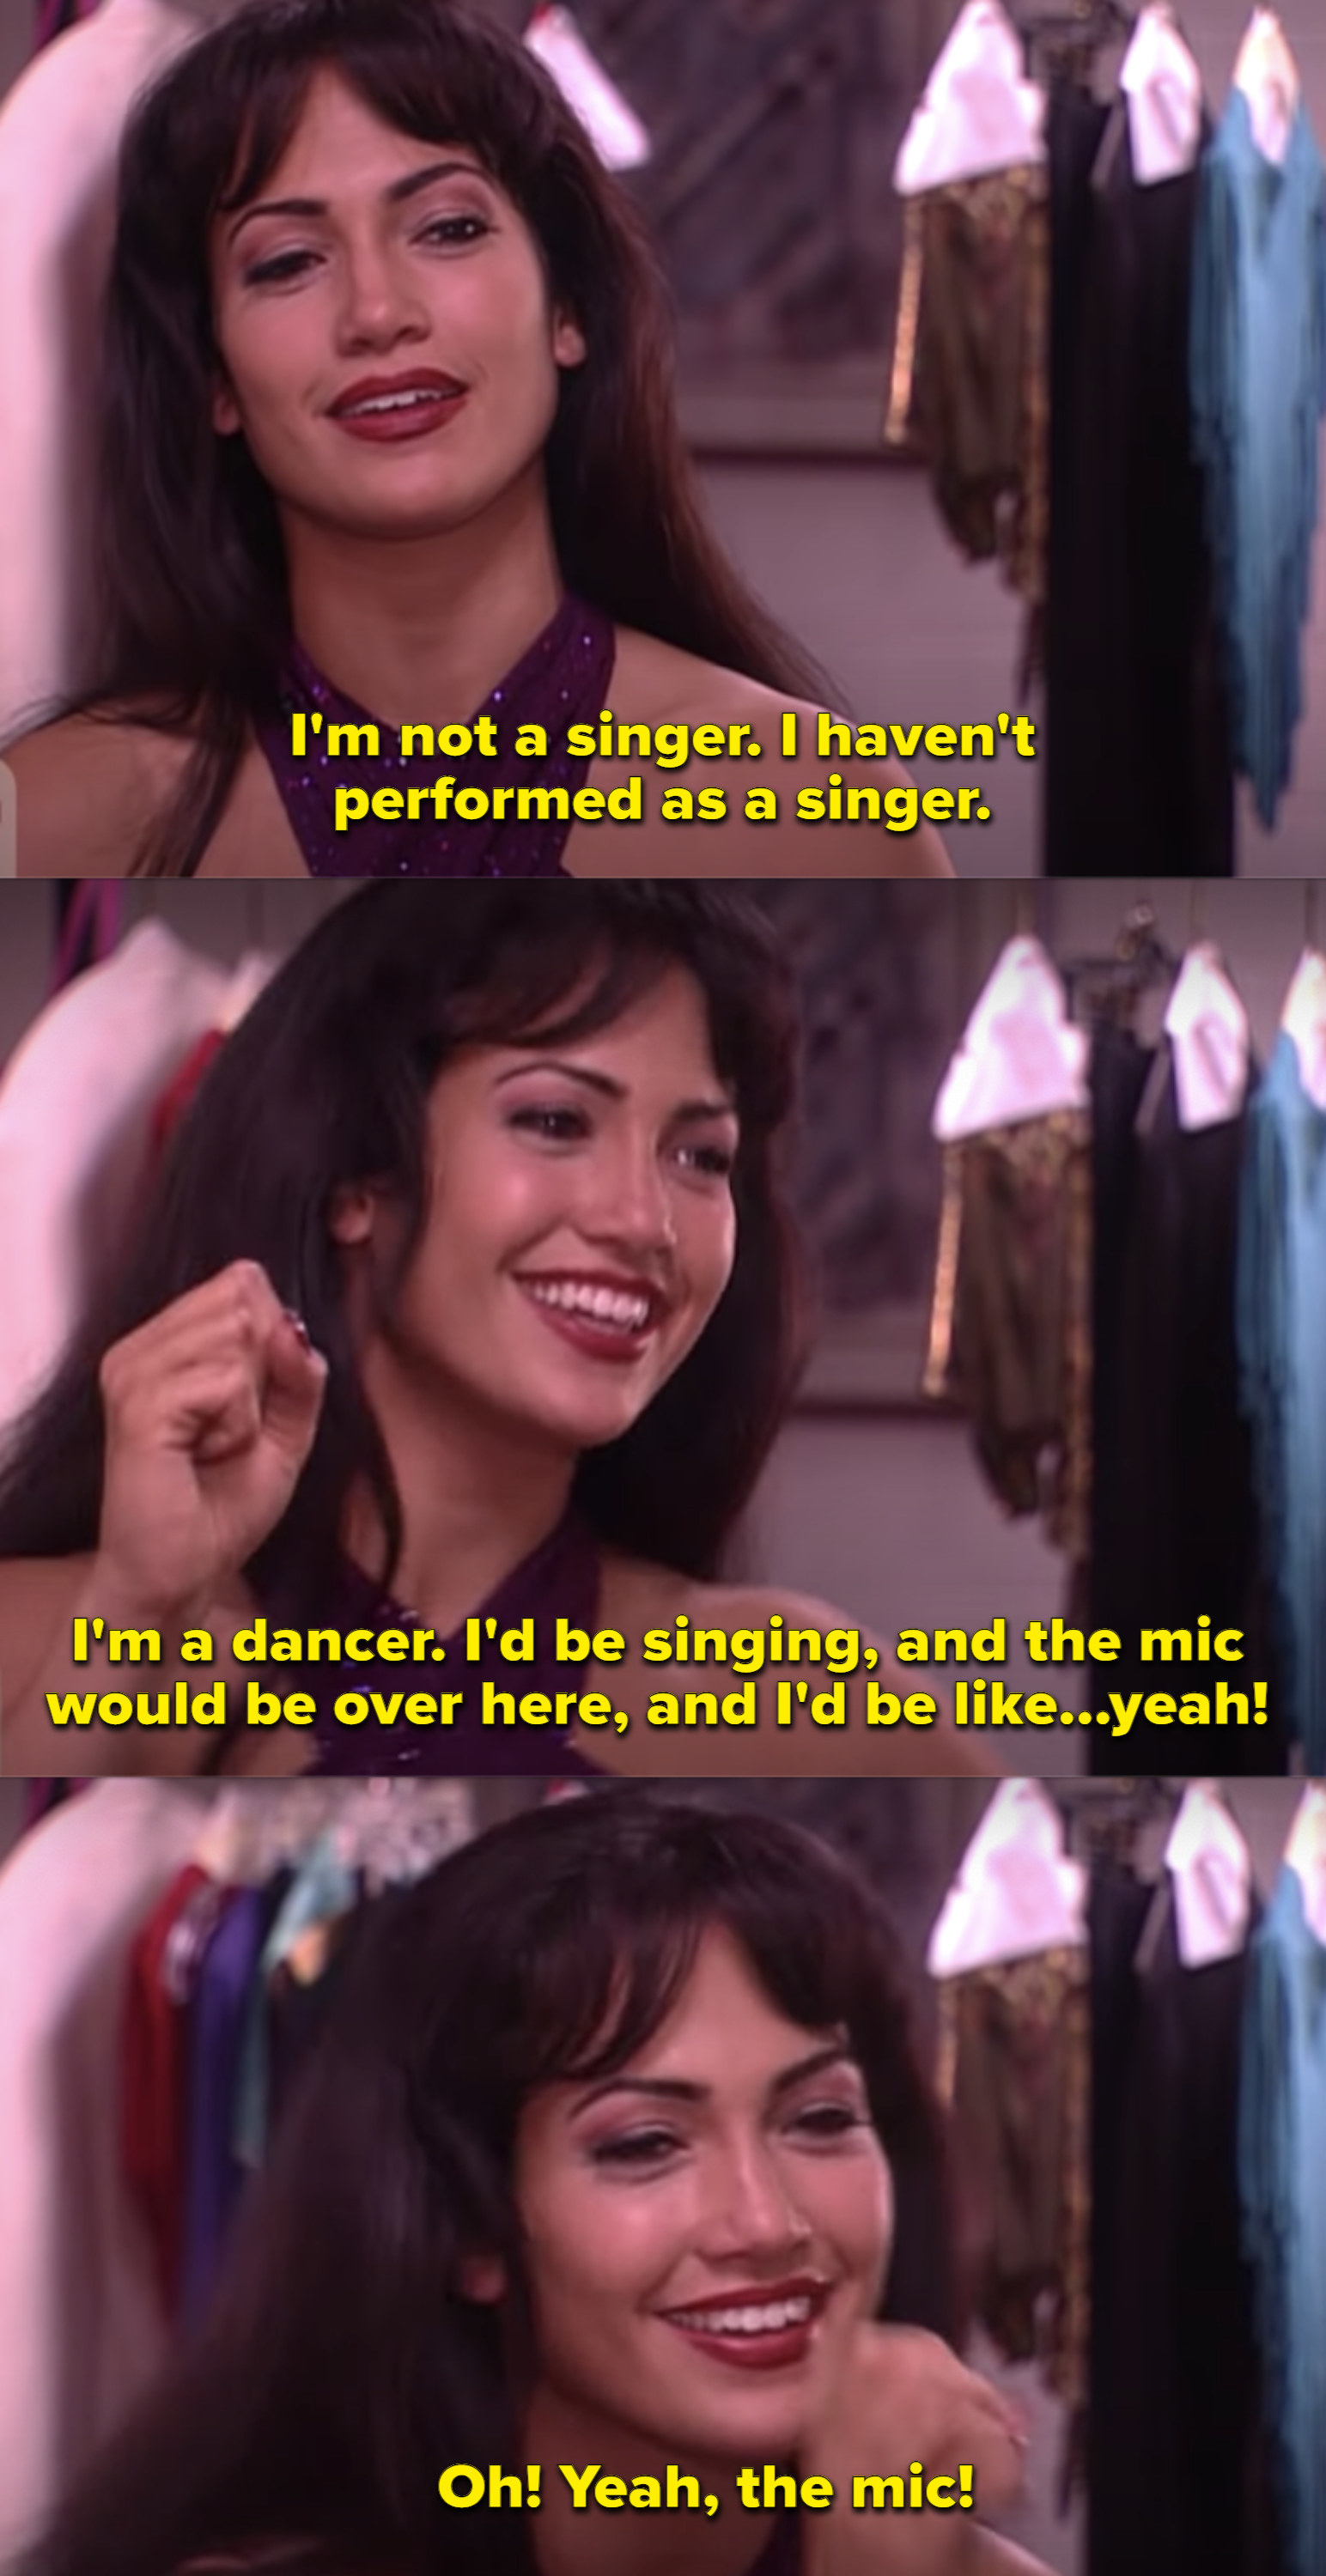 Jennifer Lopez as Selena in her dressing room